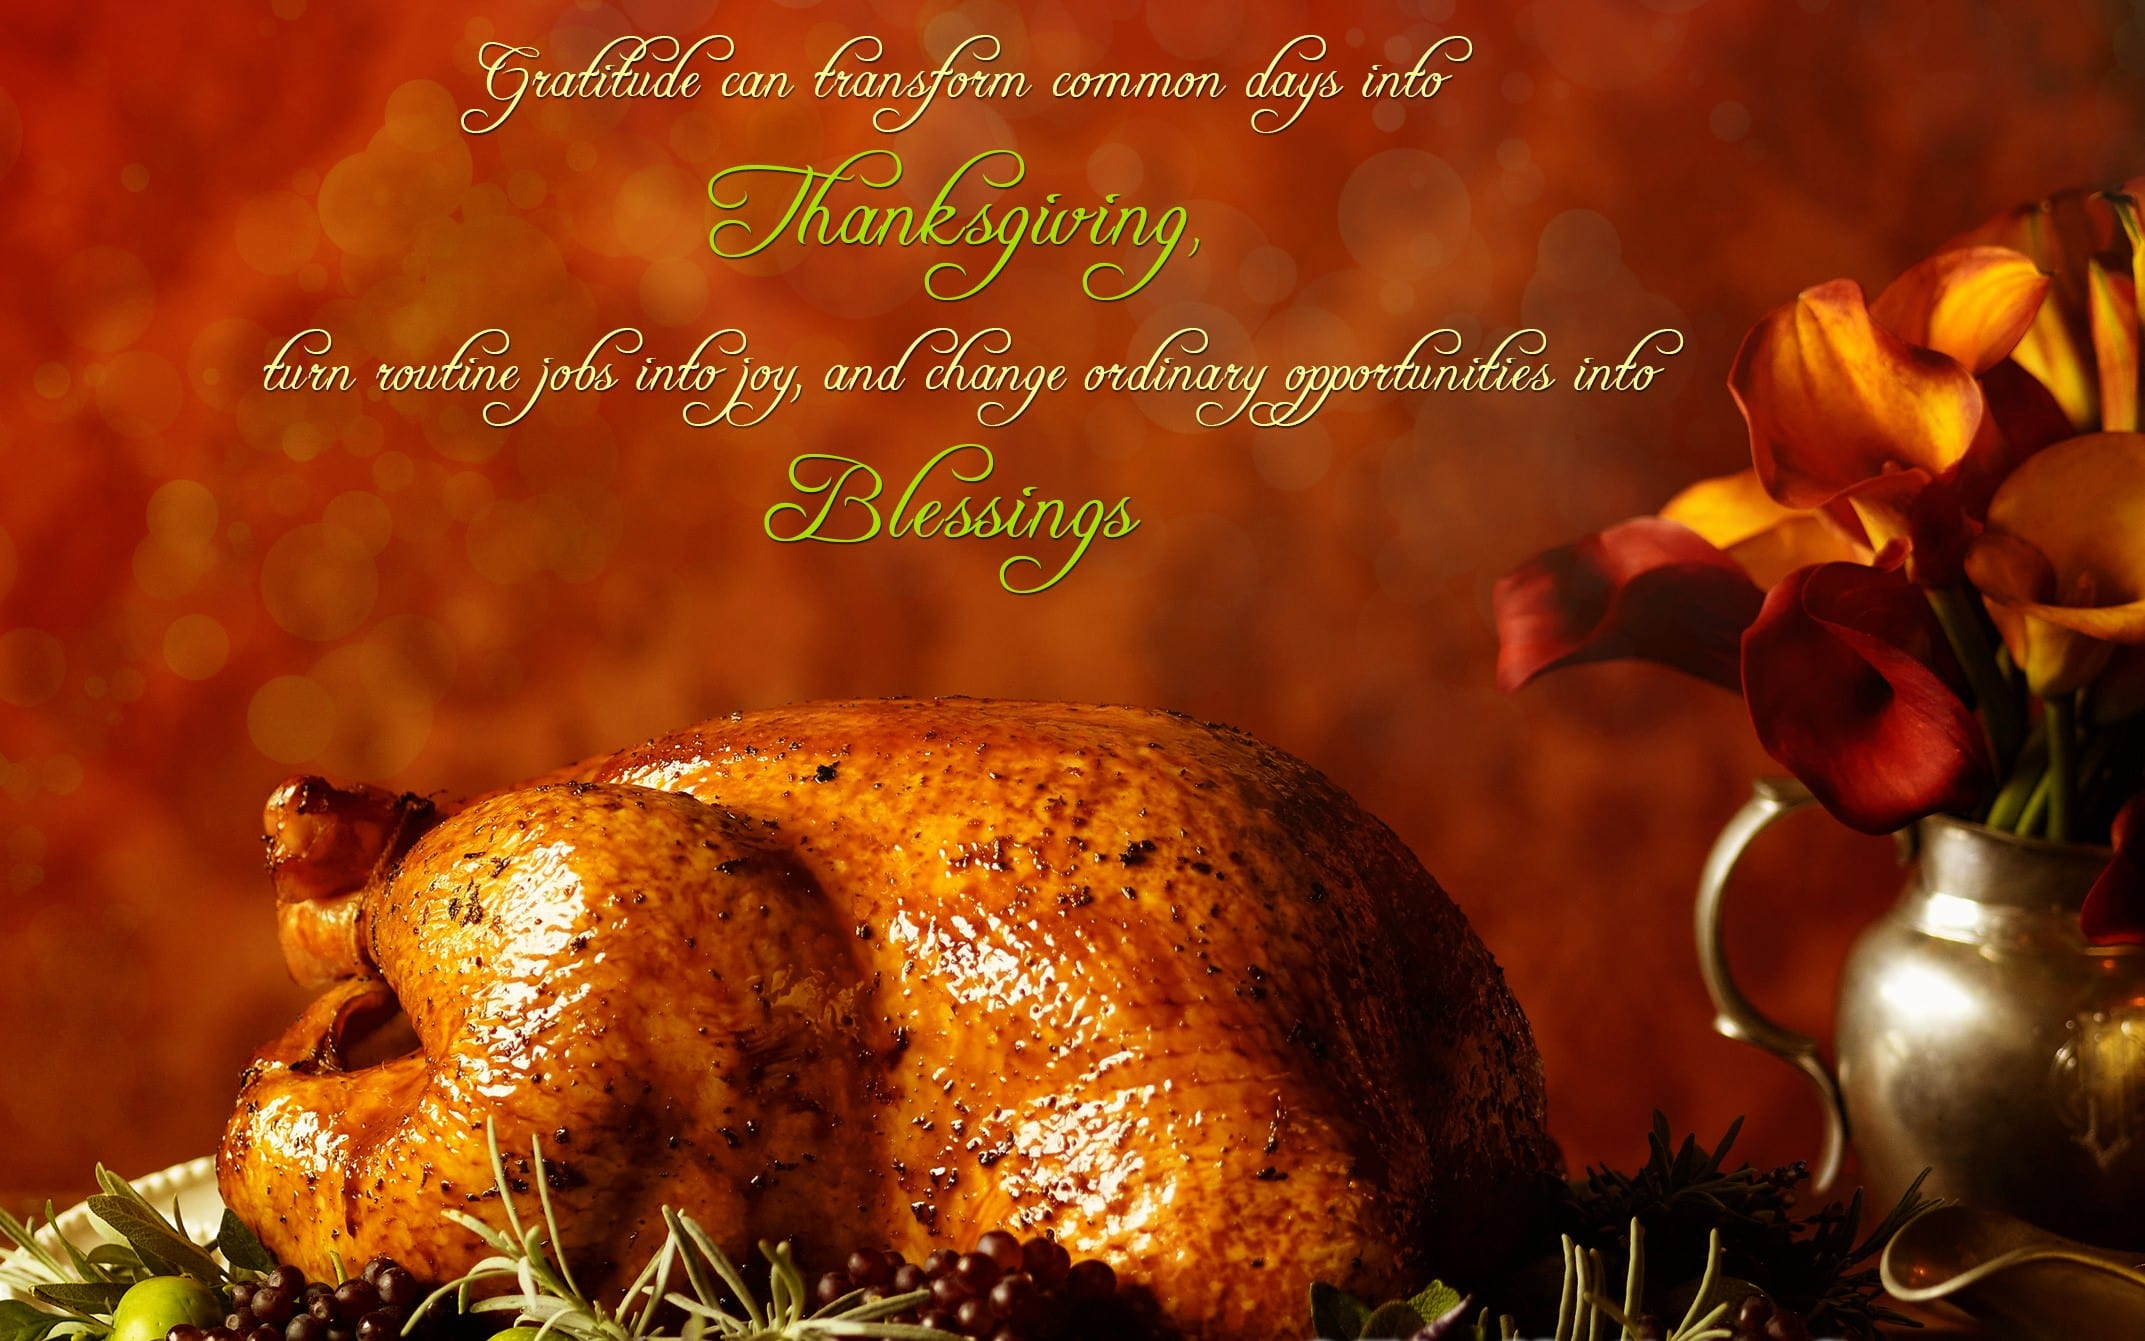 Happy Thanksgiving from your Keiser University Family